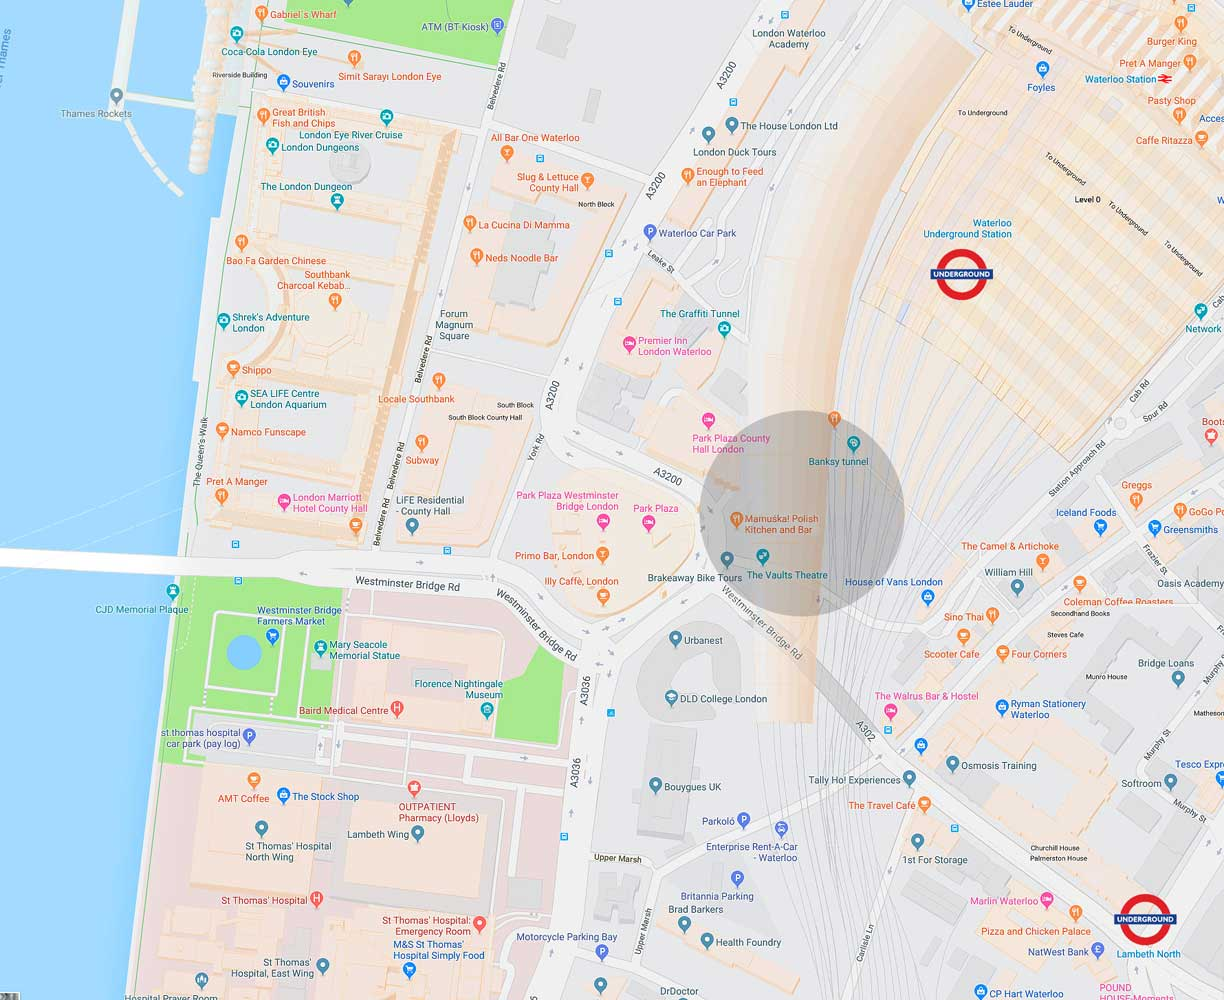 Location map of London South Bank Event Venue managed by Venues LDN